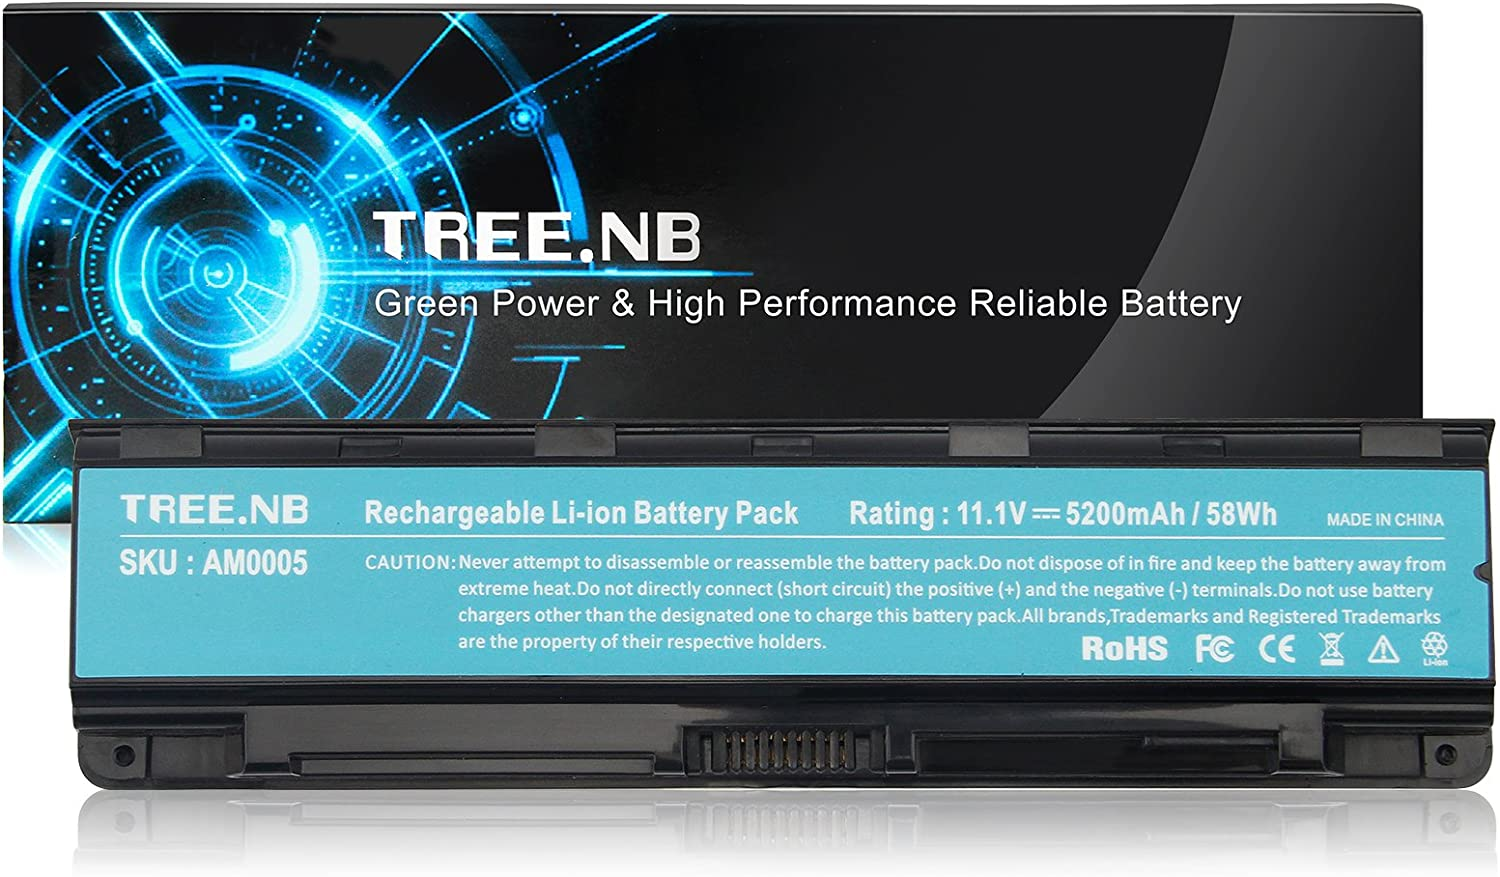 Tree.NB High Performance Laptop Battery Compatible with Toshiba PA5024U-1BRS PA5023U-1BRS PA5025U1BRS PA5026U-1BRS PA5027U-1BRS, PABAS259 C800 C845 L835 L850, Upgraded Cells Li-ion Battery Packs